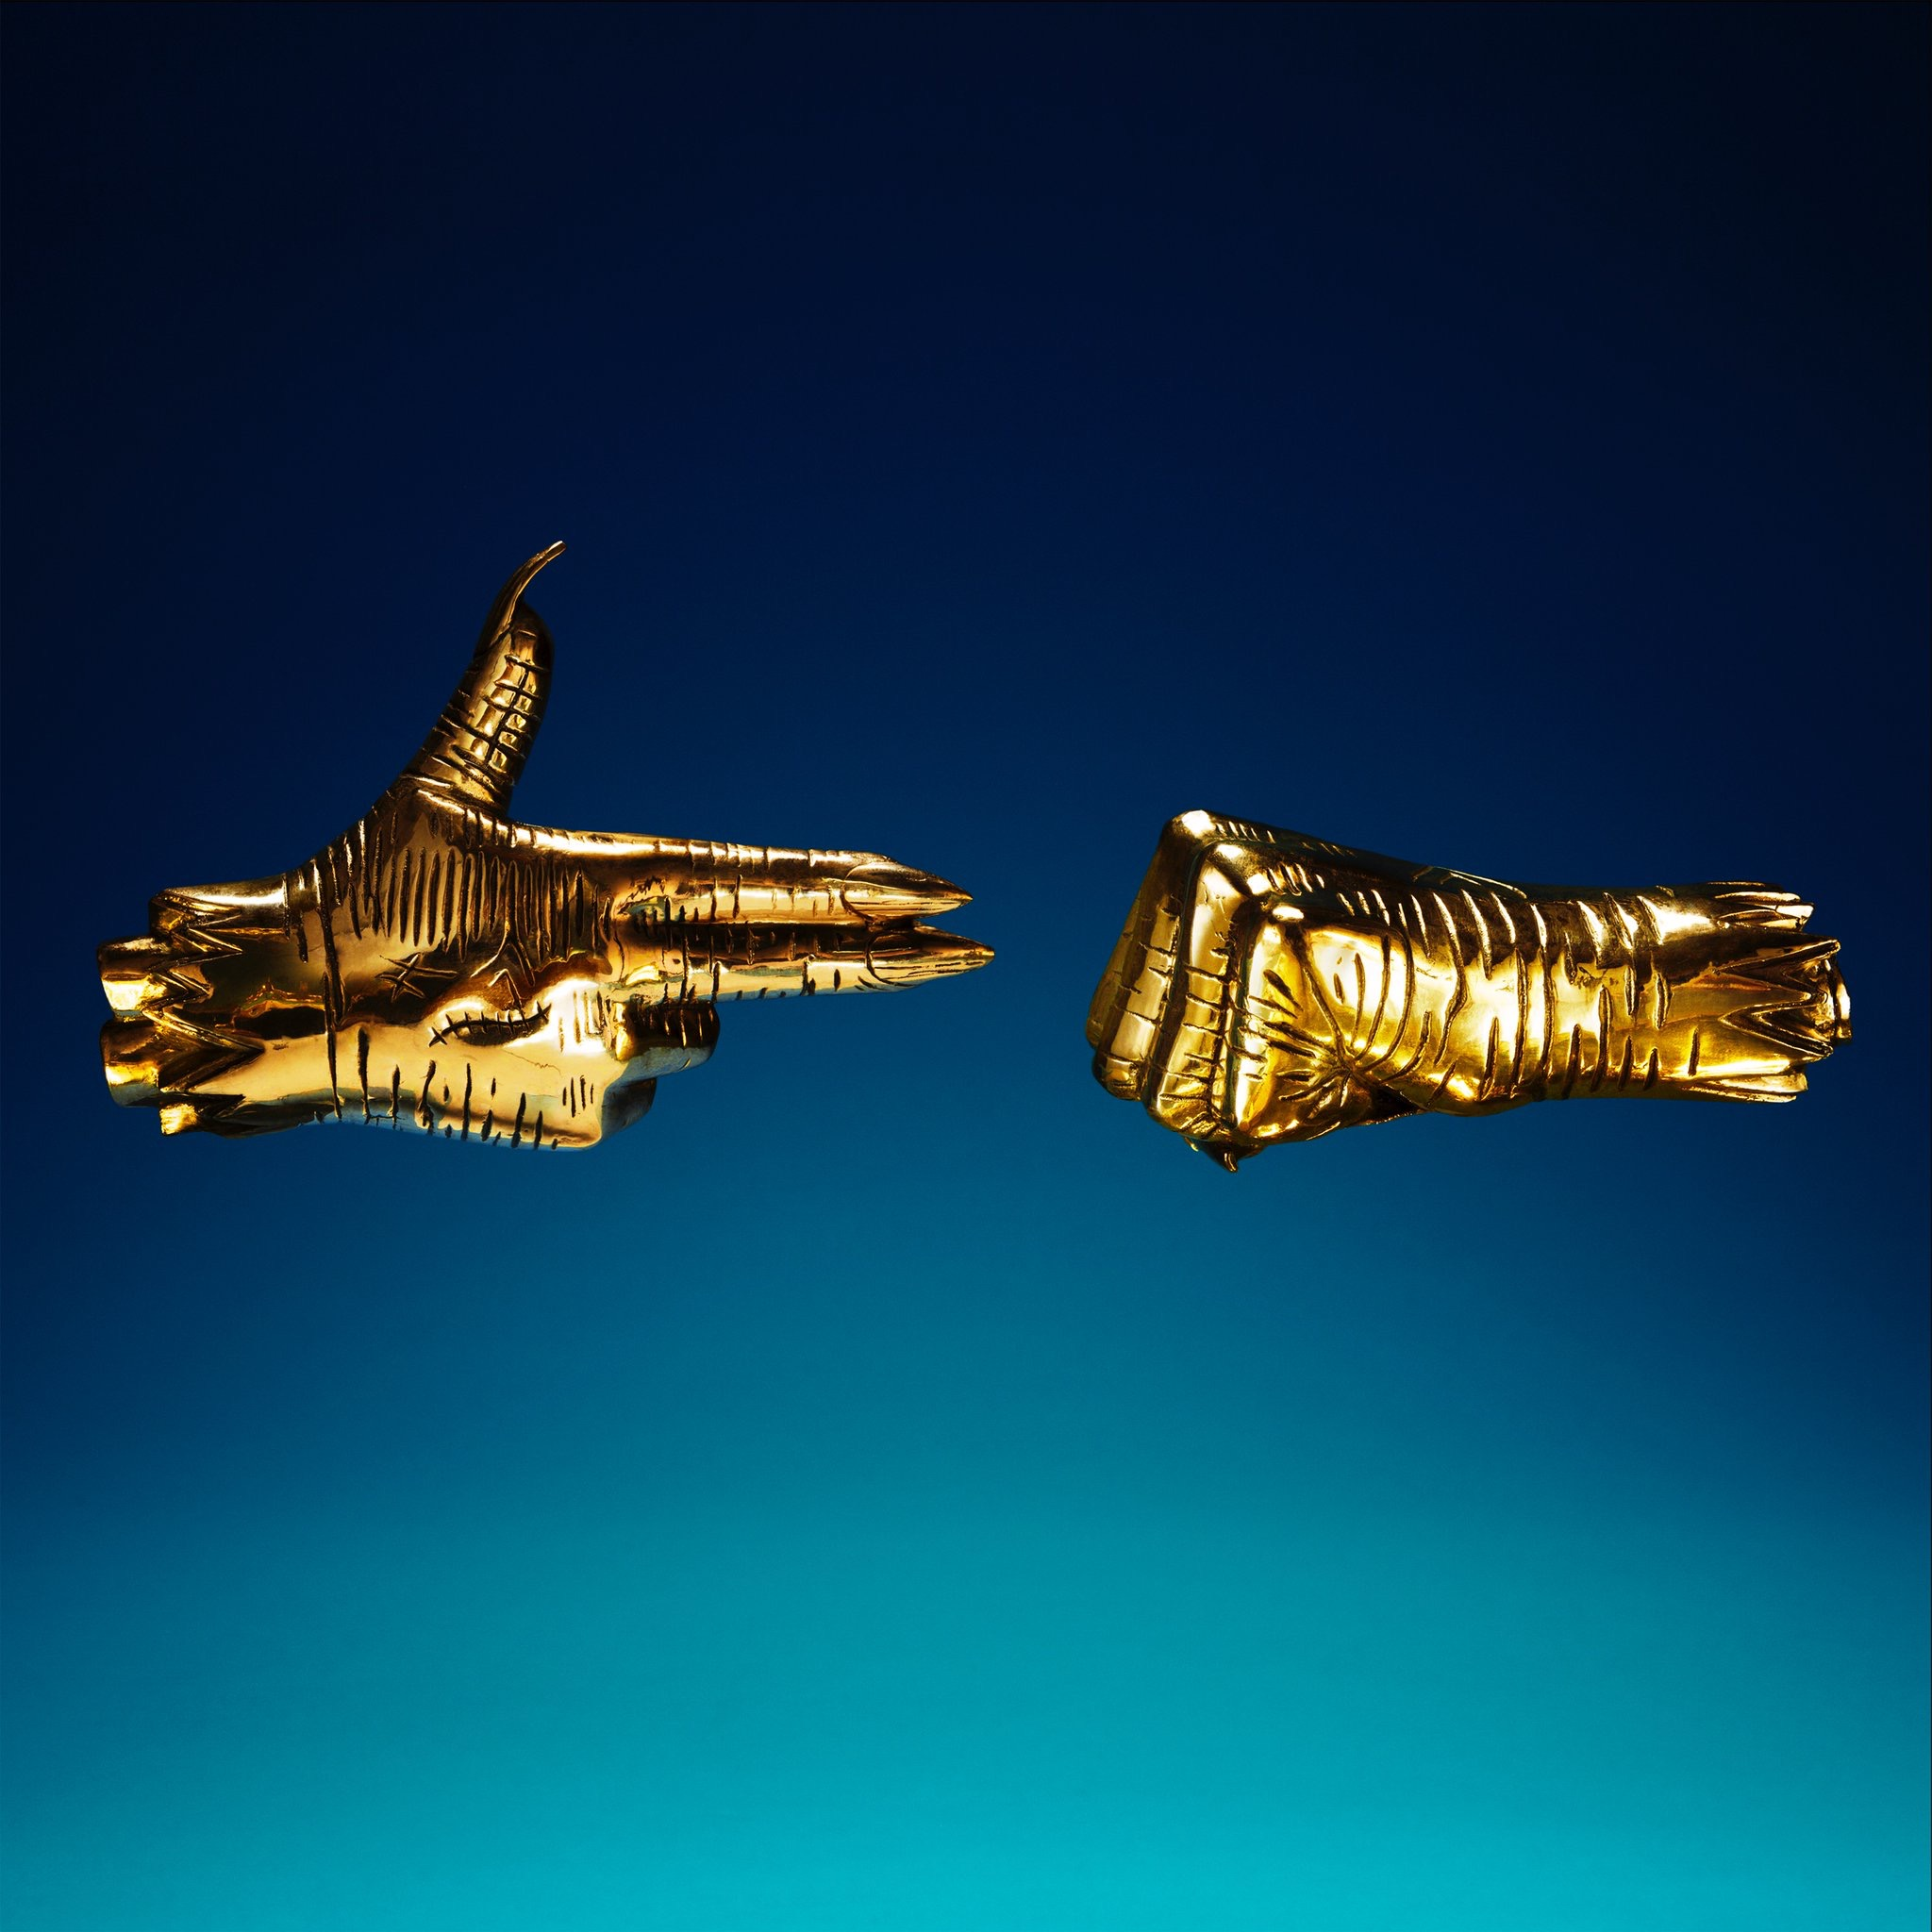 Download run the jewels rtj3 it wasnt a week ago when run the jewels announced that their third album would drop on january 13th 2017 but then a christmas fucking miracle happened malvernweather Gallery